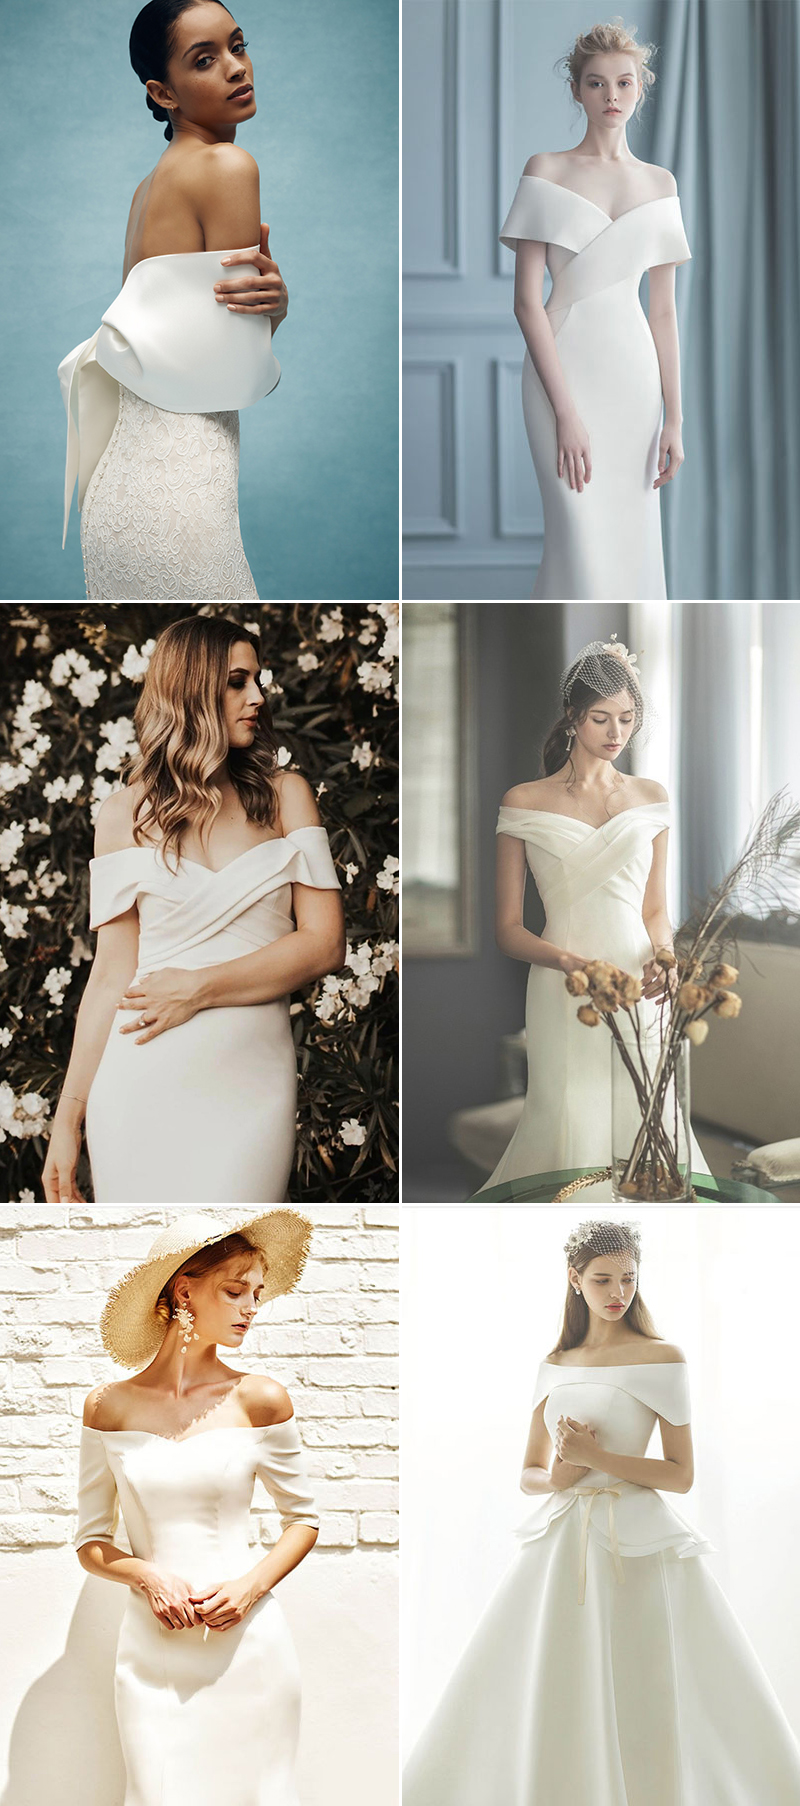 wedding dress styles from real brides - off-the-shoulder